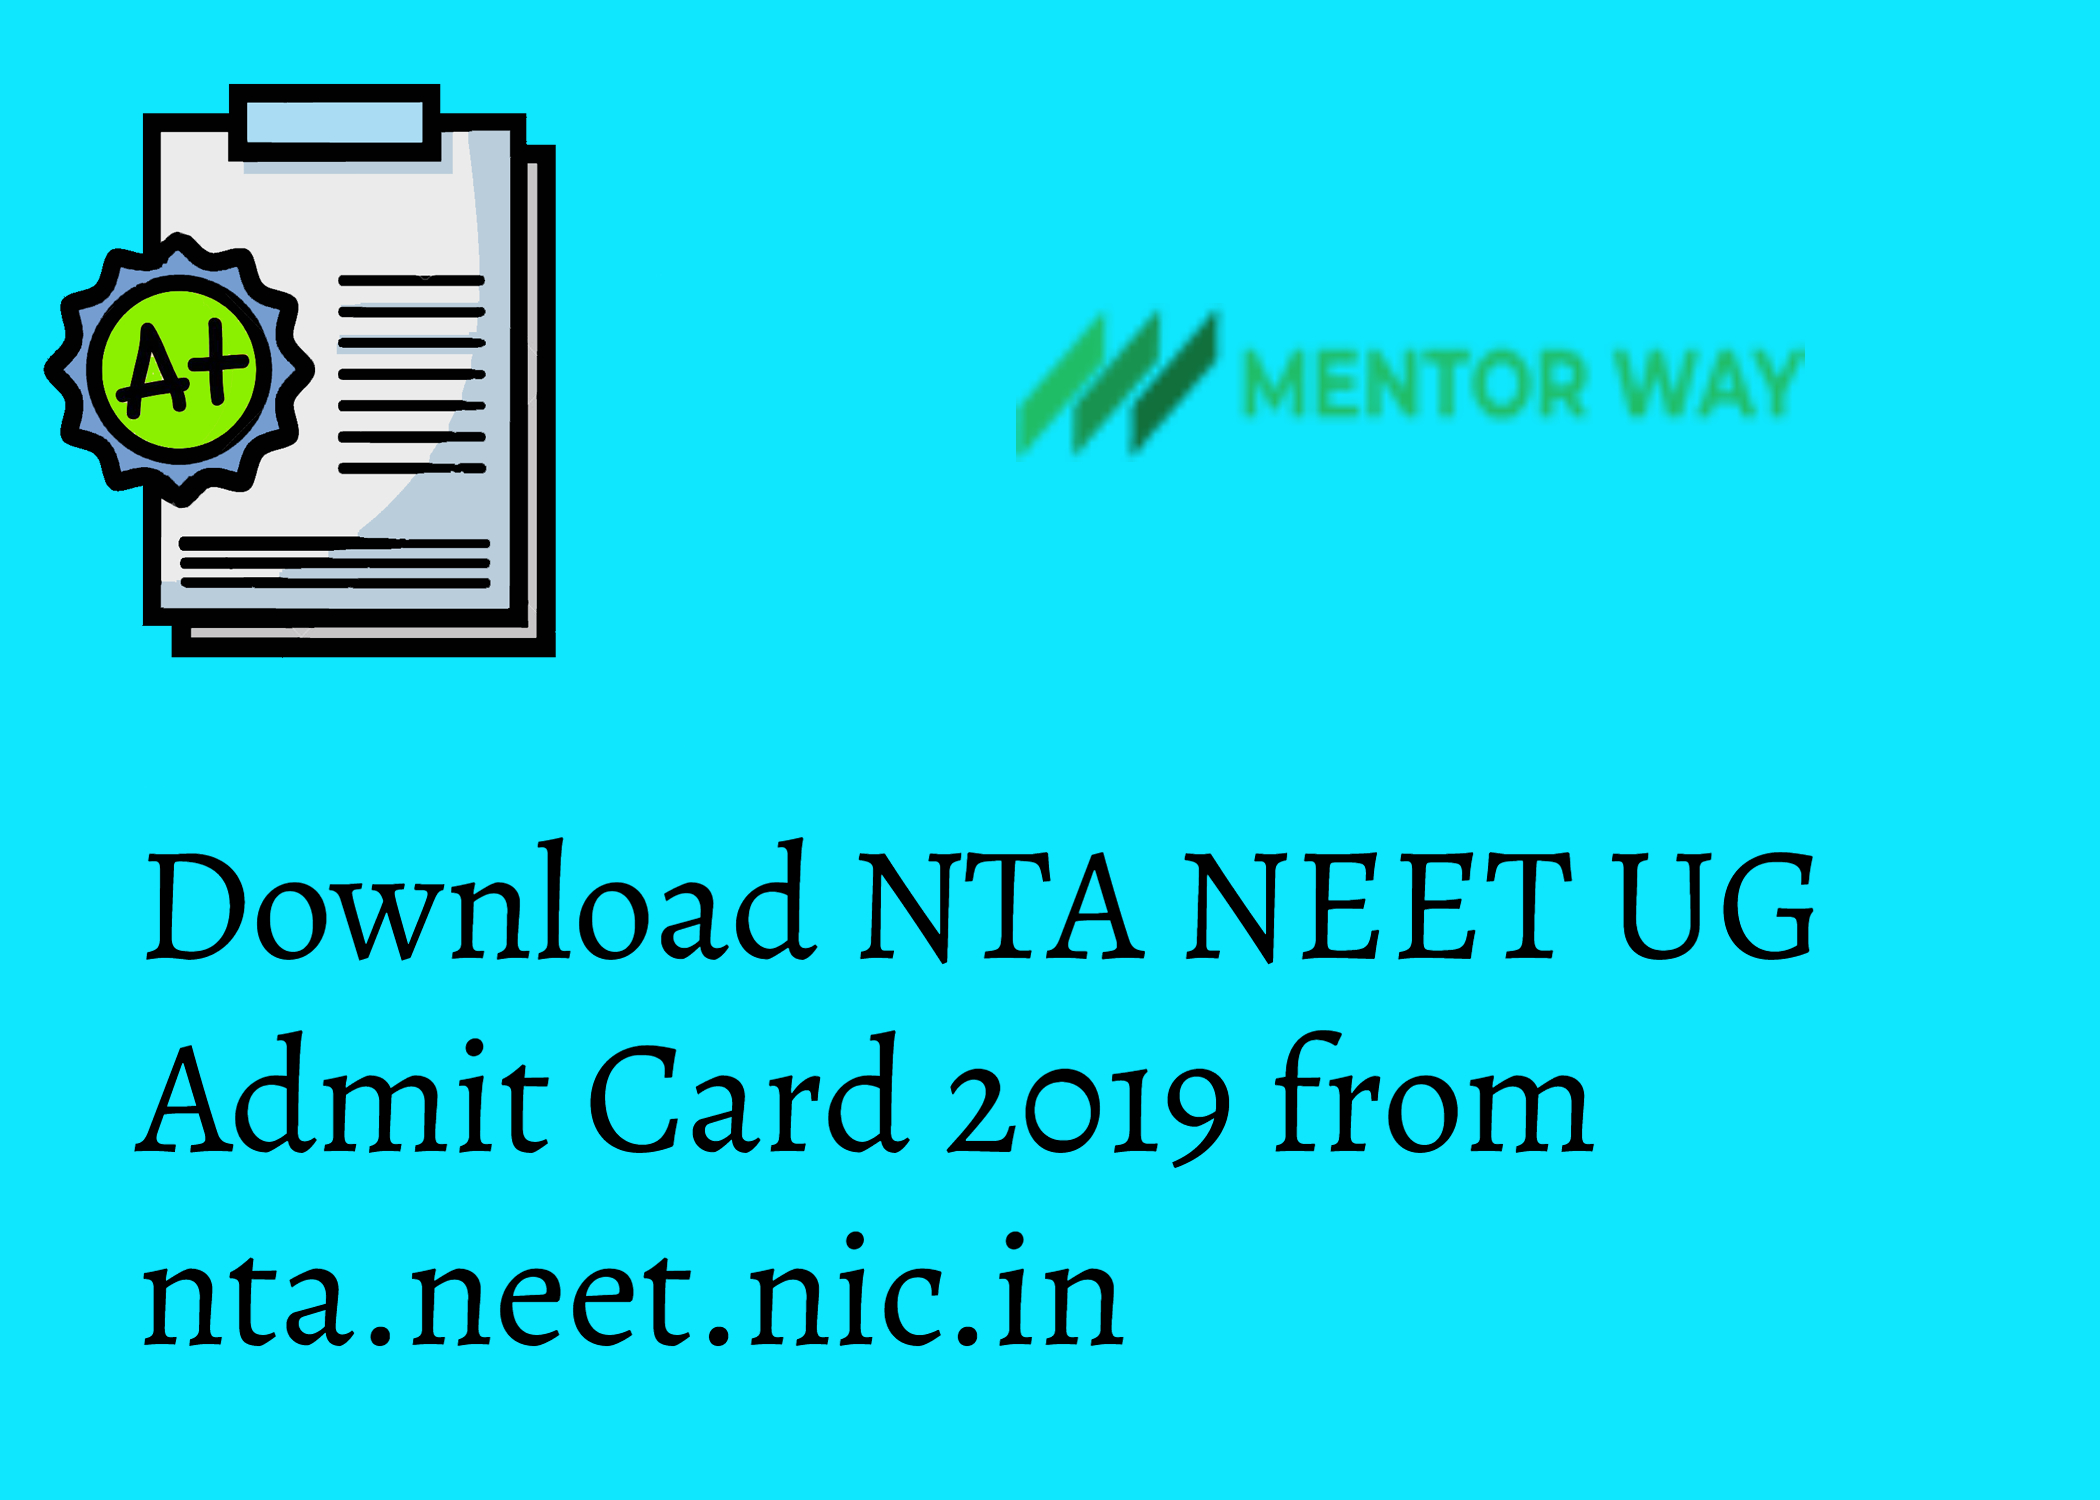 Download NTA NEET UG Admit Card 2019 from nta.neet.nic.in